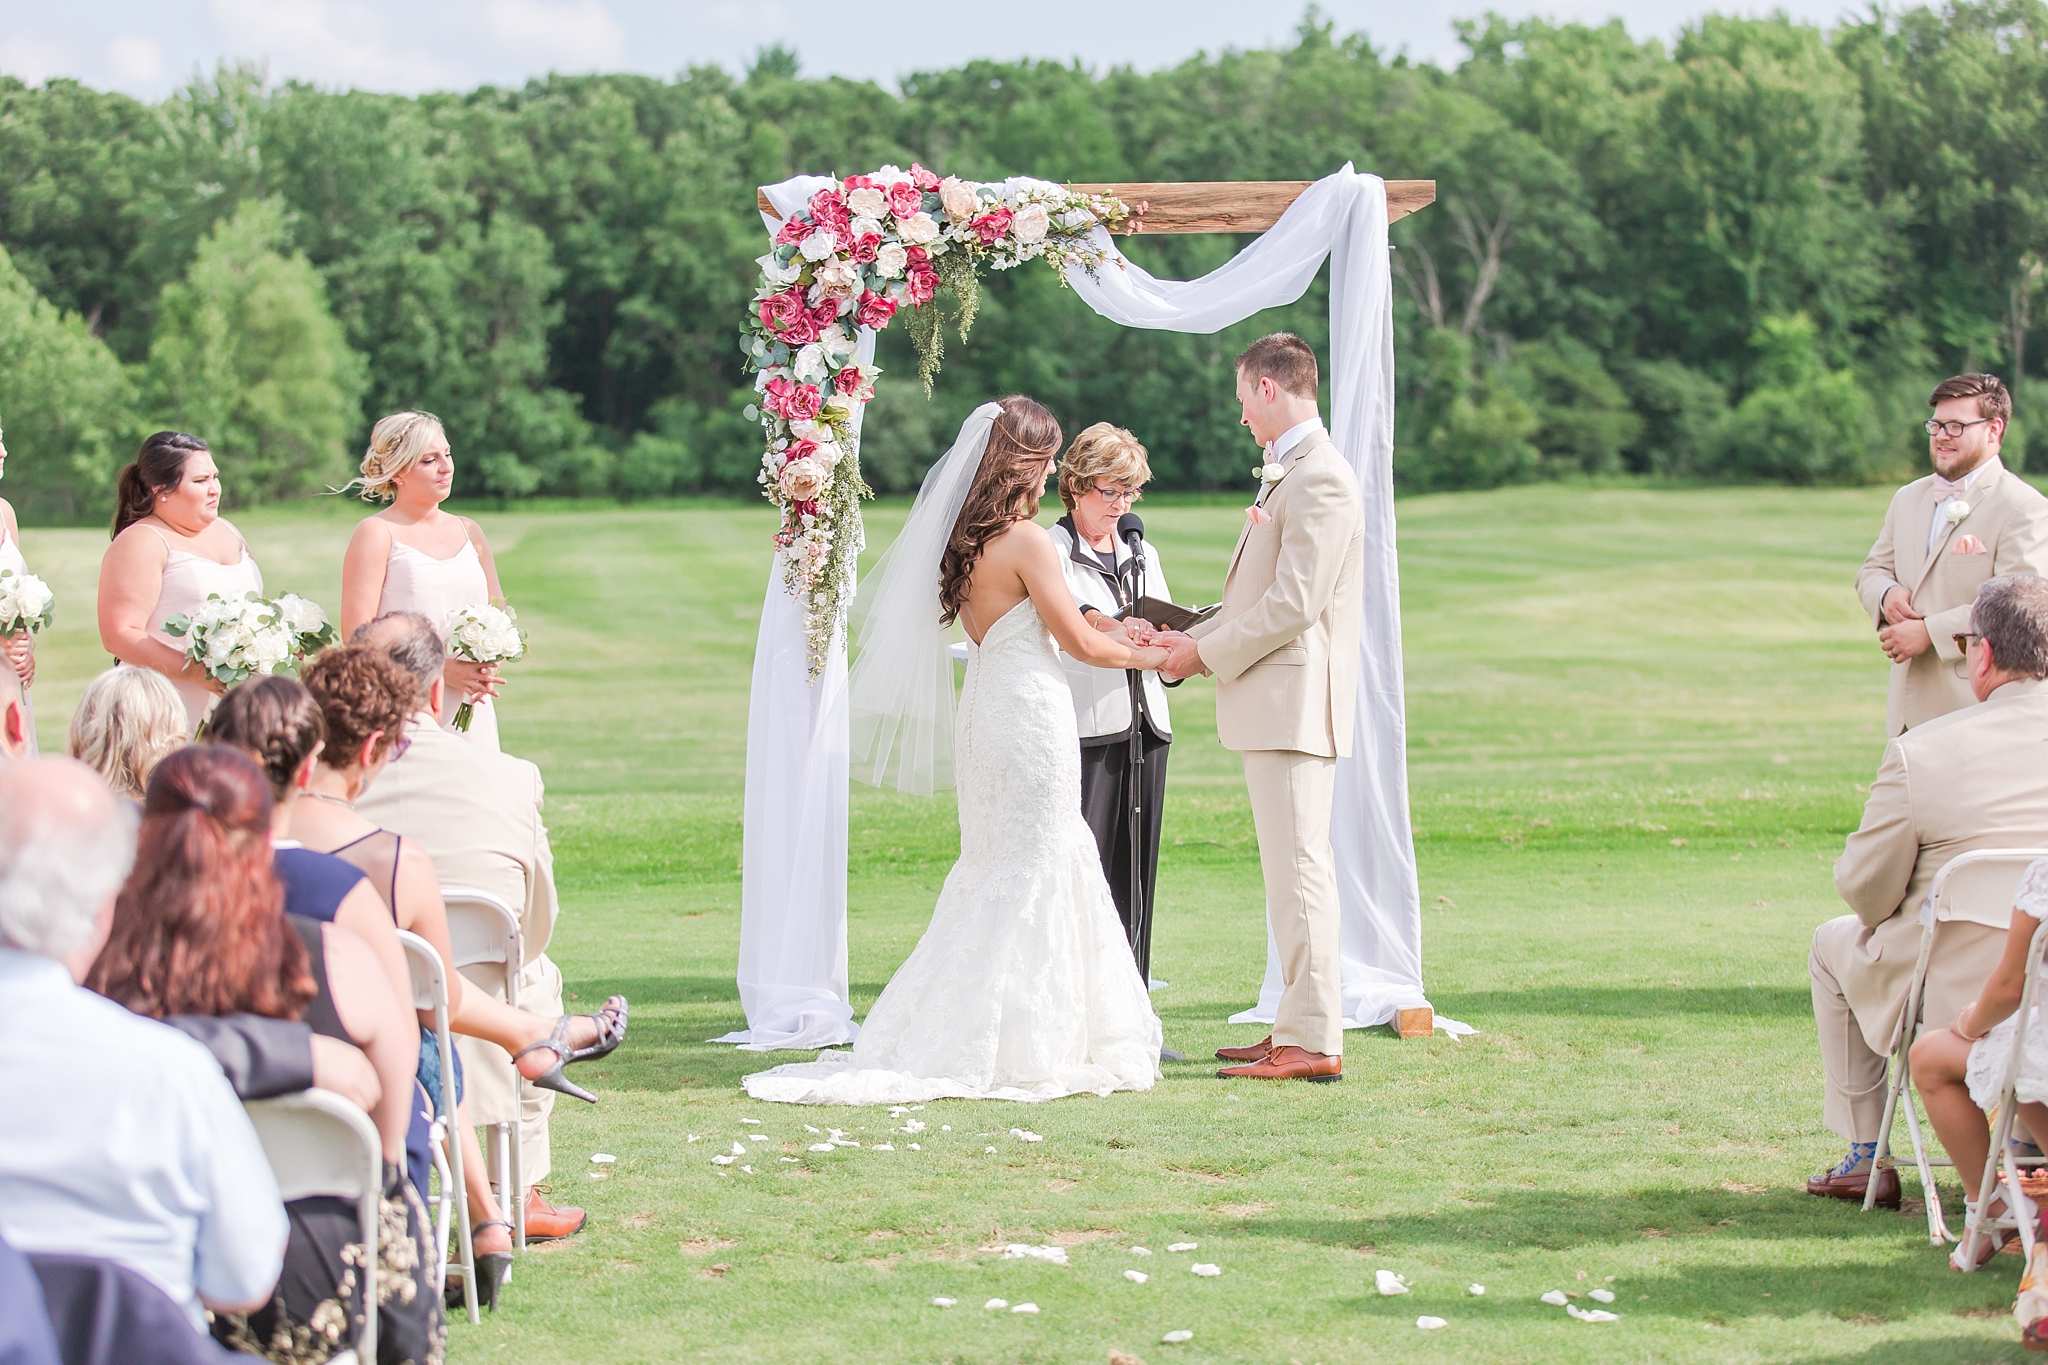 candid-timeless-wedding-photos-at-the-captains-club-in-grand-blanc-michigan-by-courtney-carolyn-photography_0044.jpg